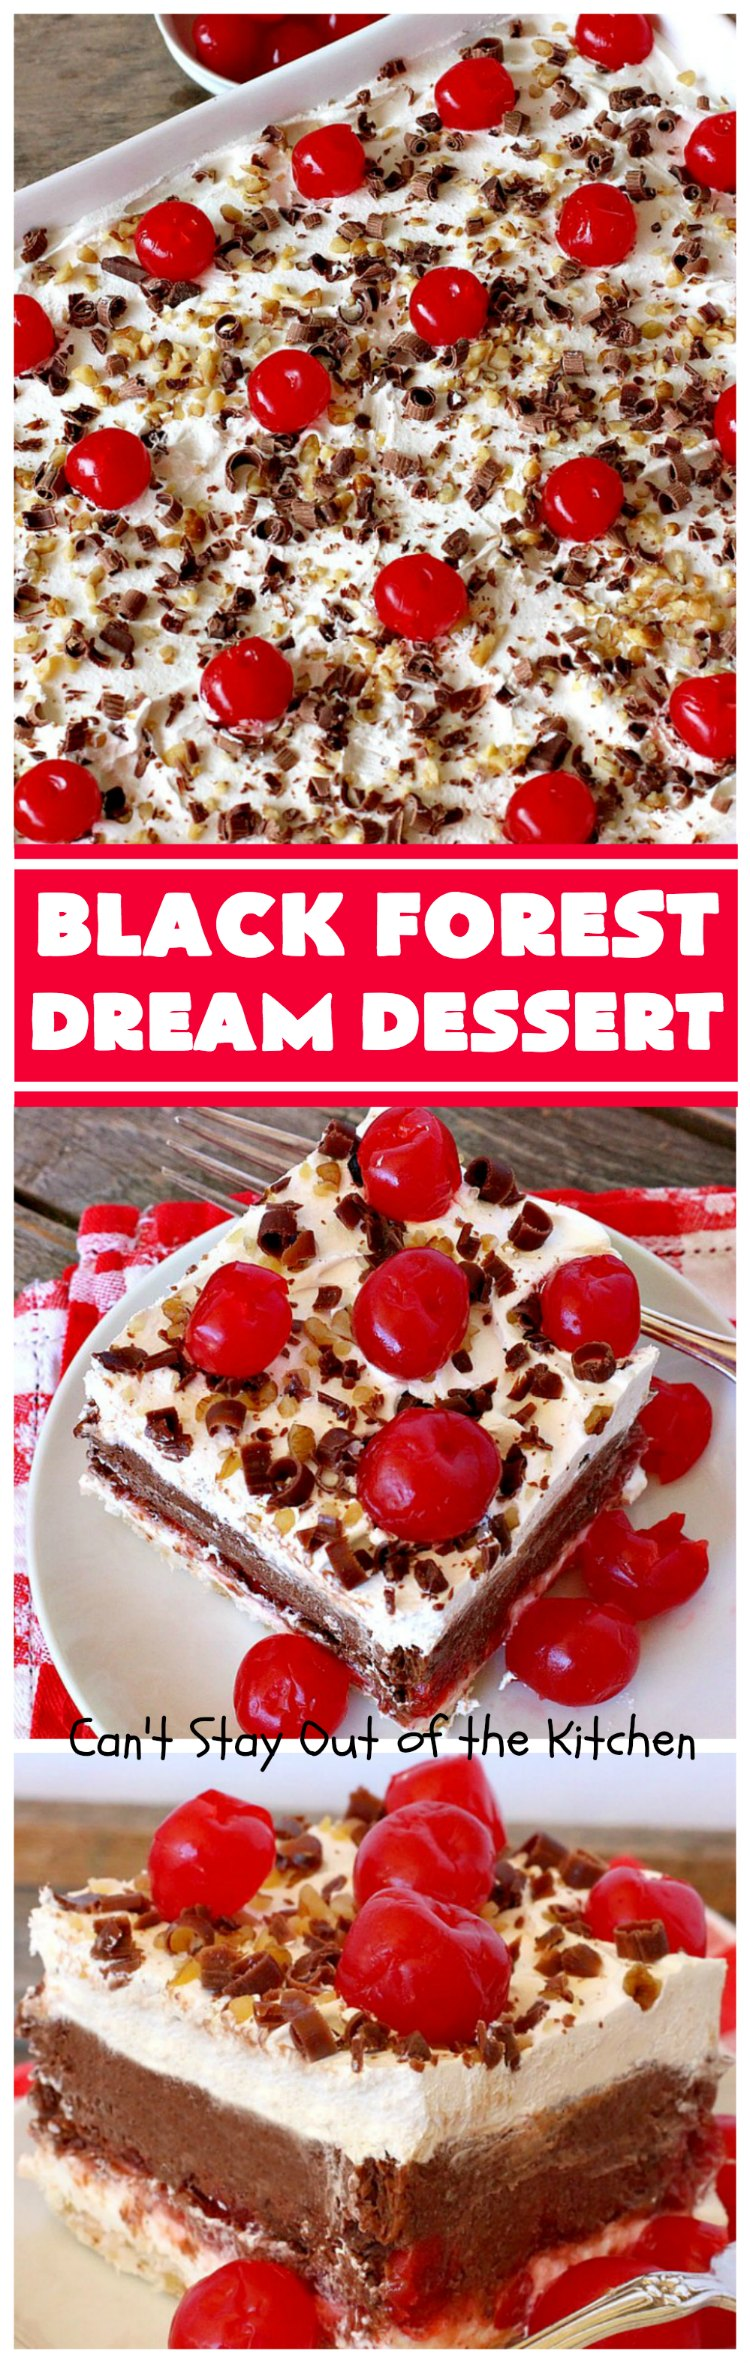 Black Forest Dream Dessert | Can't Stay Out of the Kitchen